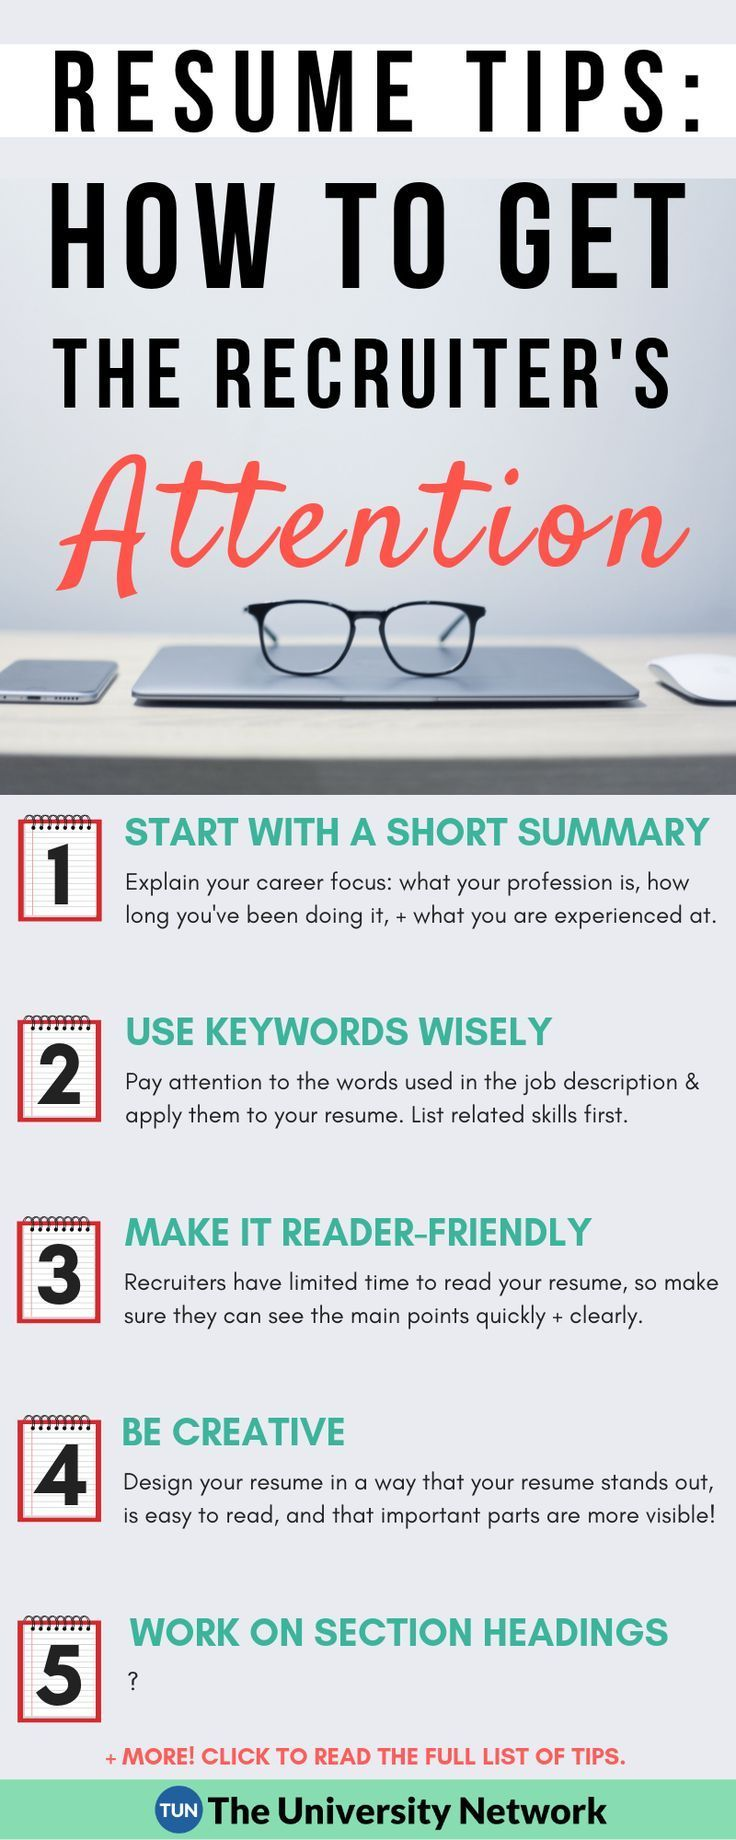 Resume Tips How to Grab the Recruiter's Attention